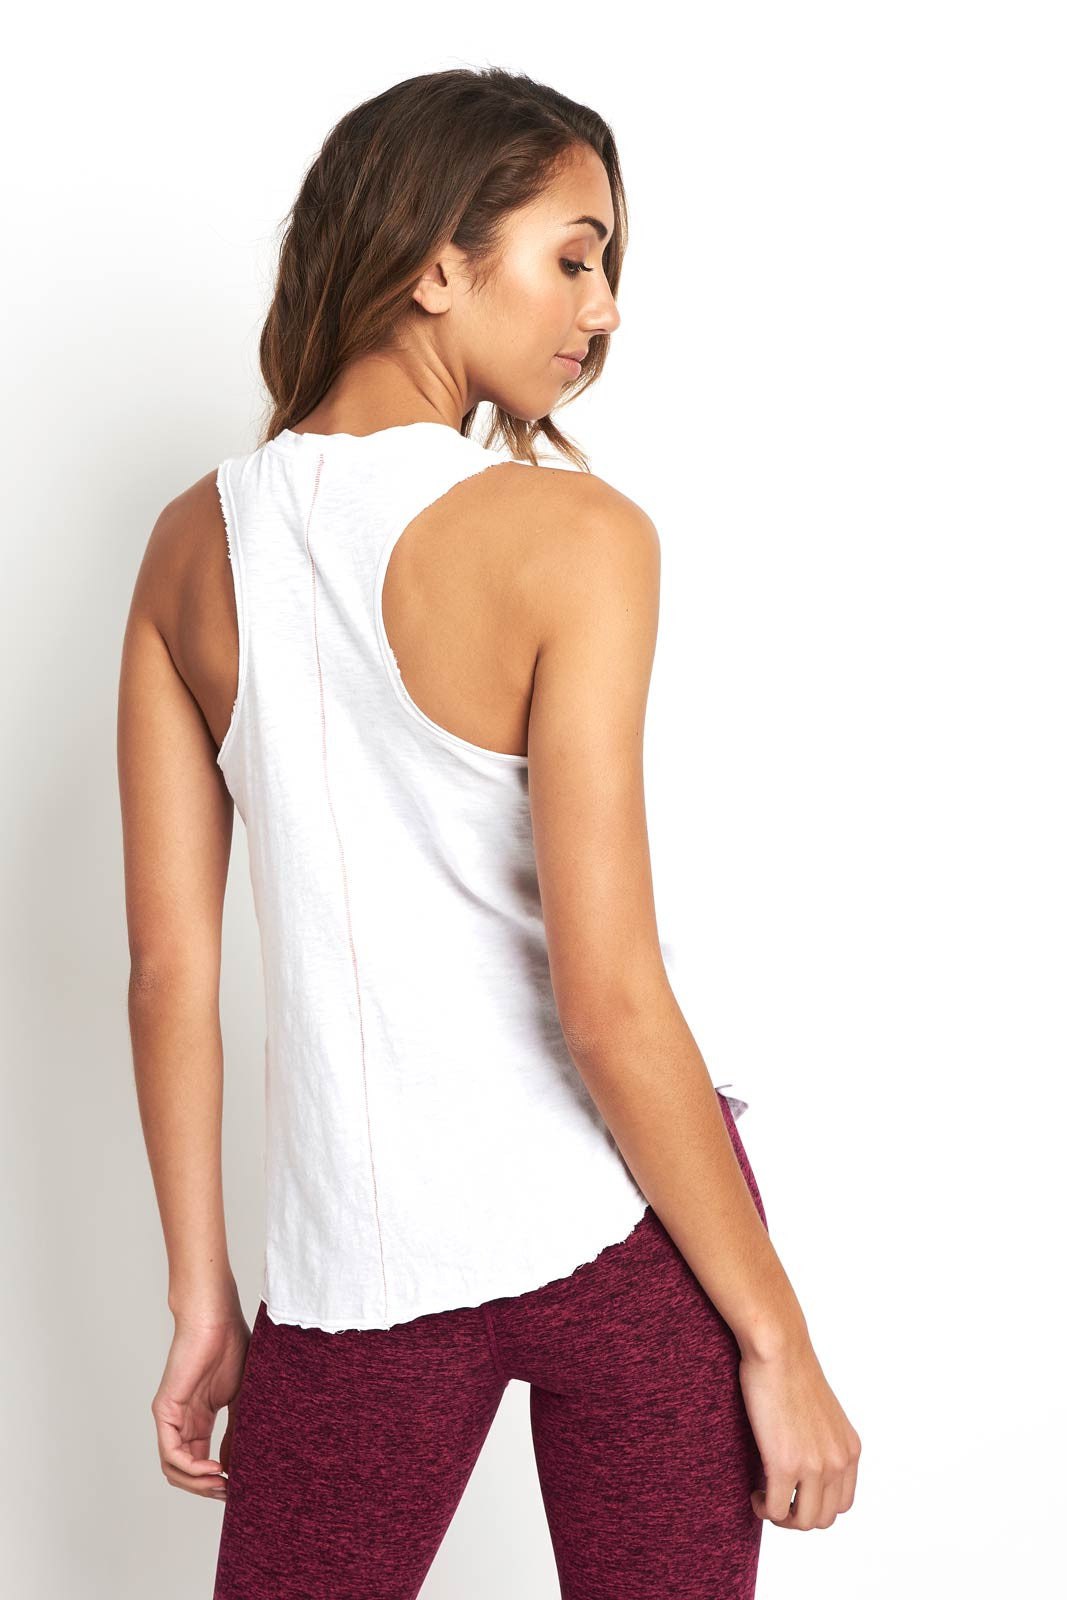 Sundry No Worries Tank Top image 2 - The Sports Edit